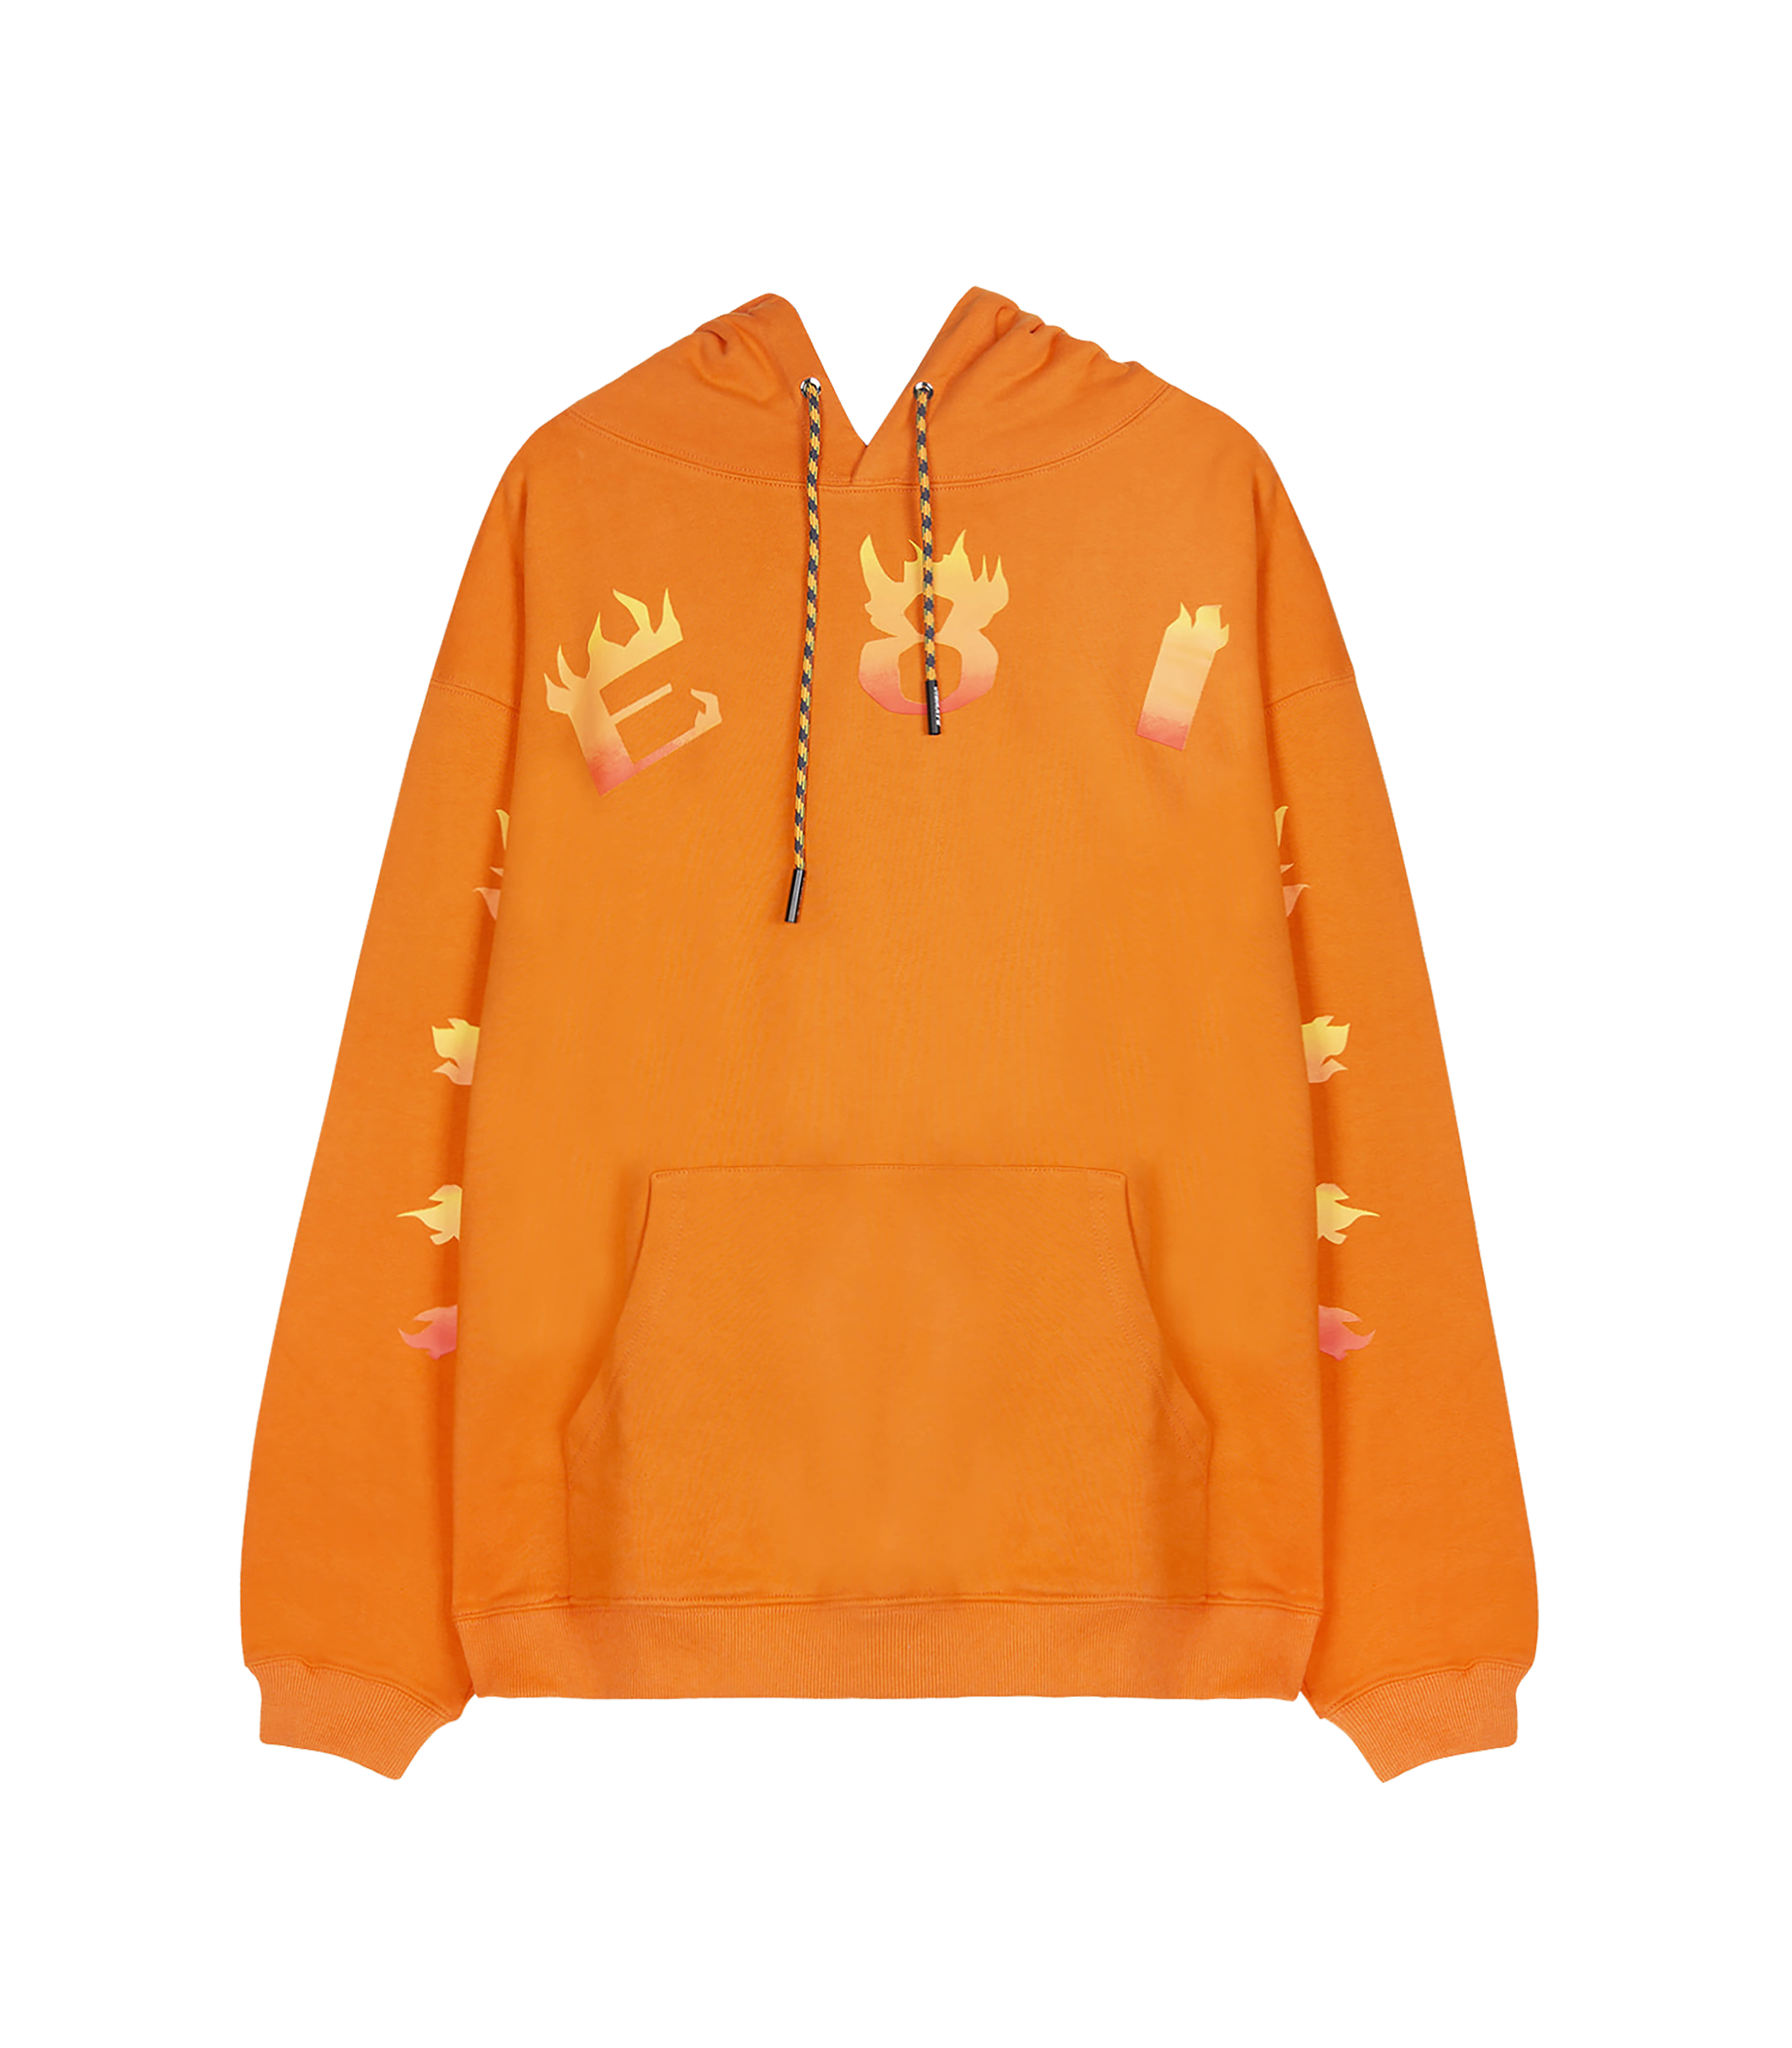 VIBE8IGHT ON CHEST HOODIE (ORANGE)